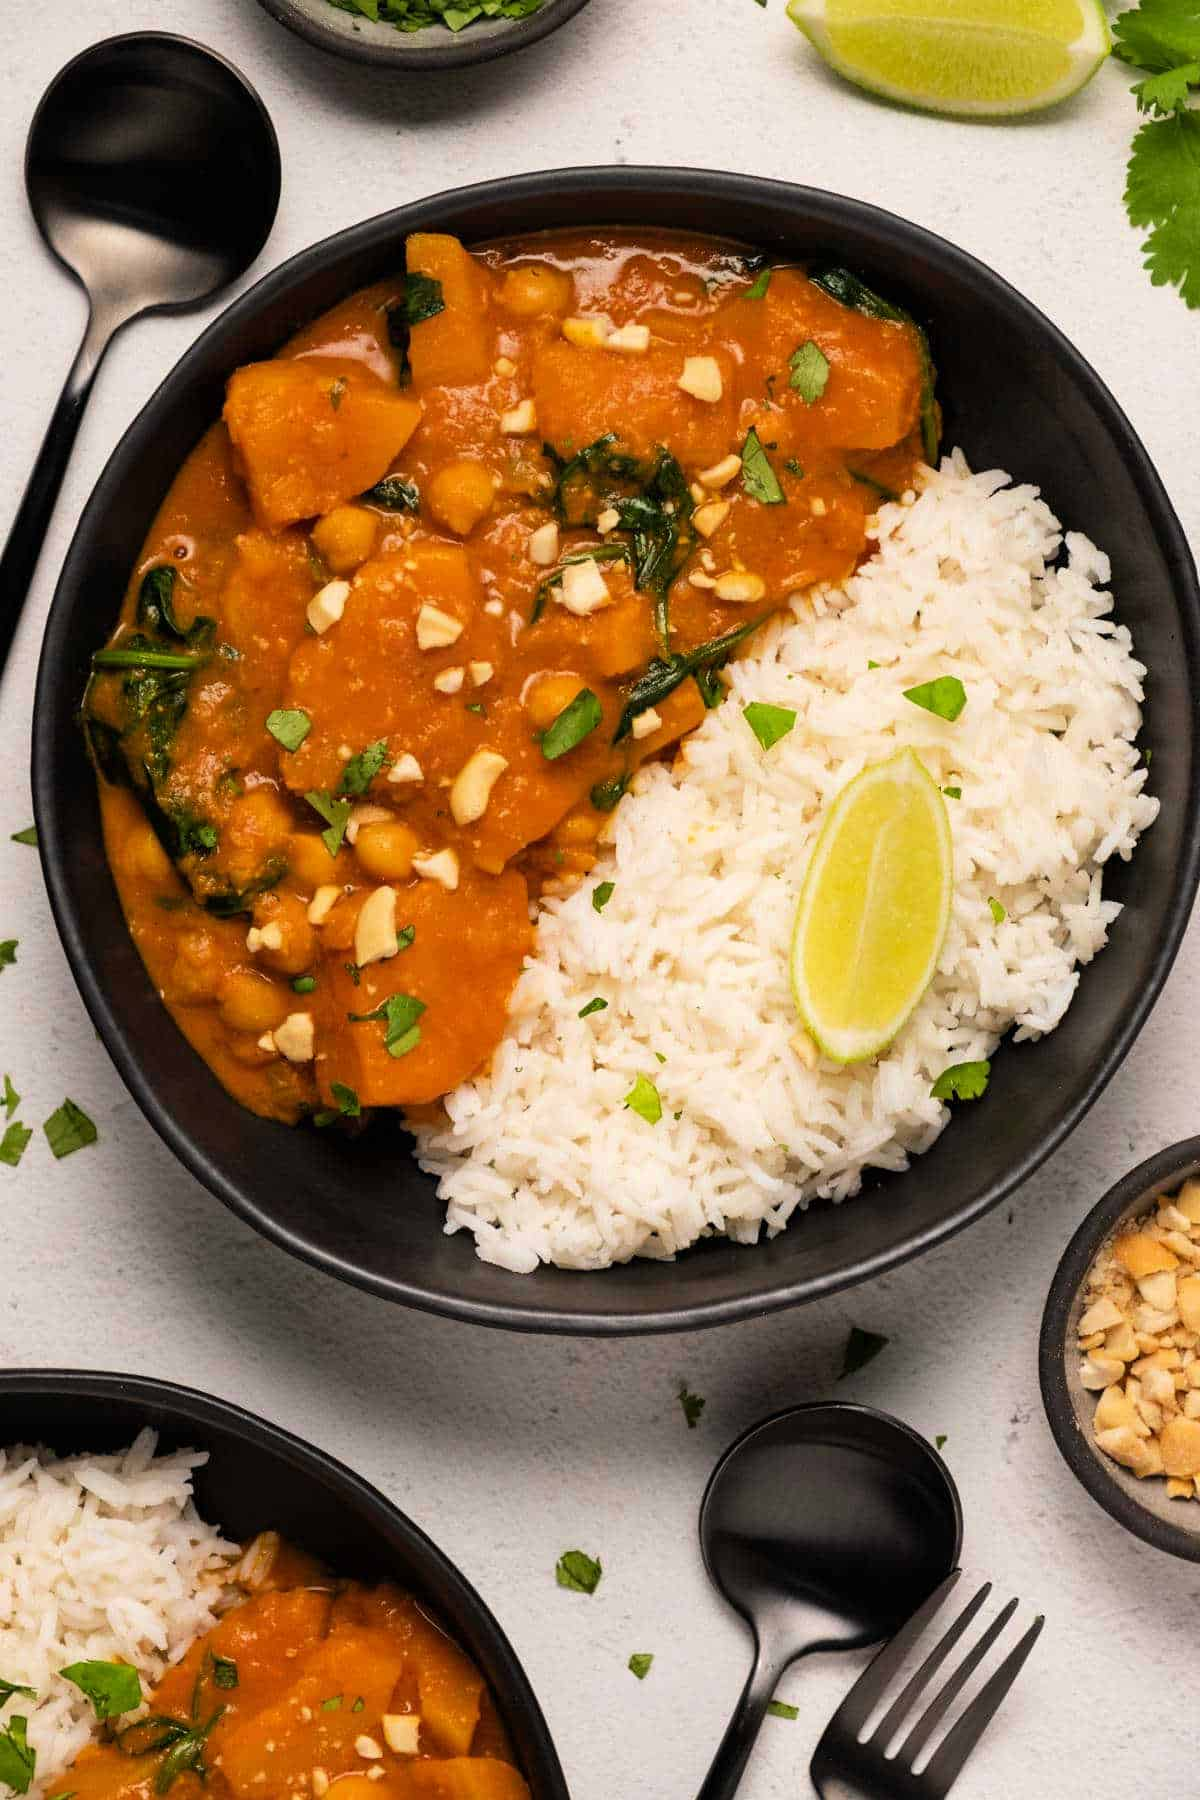 Butternut squash curry with basmati rice and fresh cilantro in a black bowl.